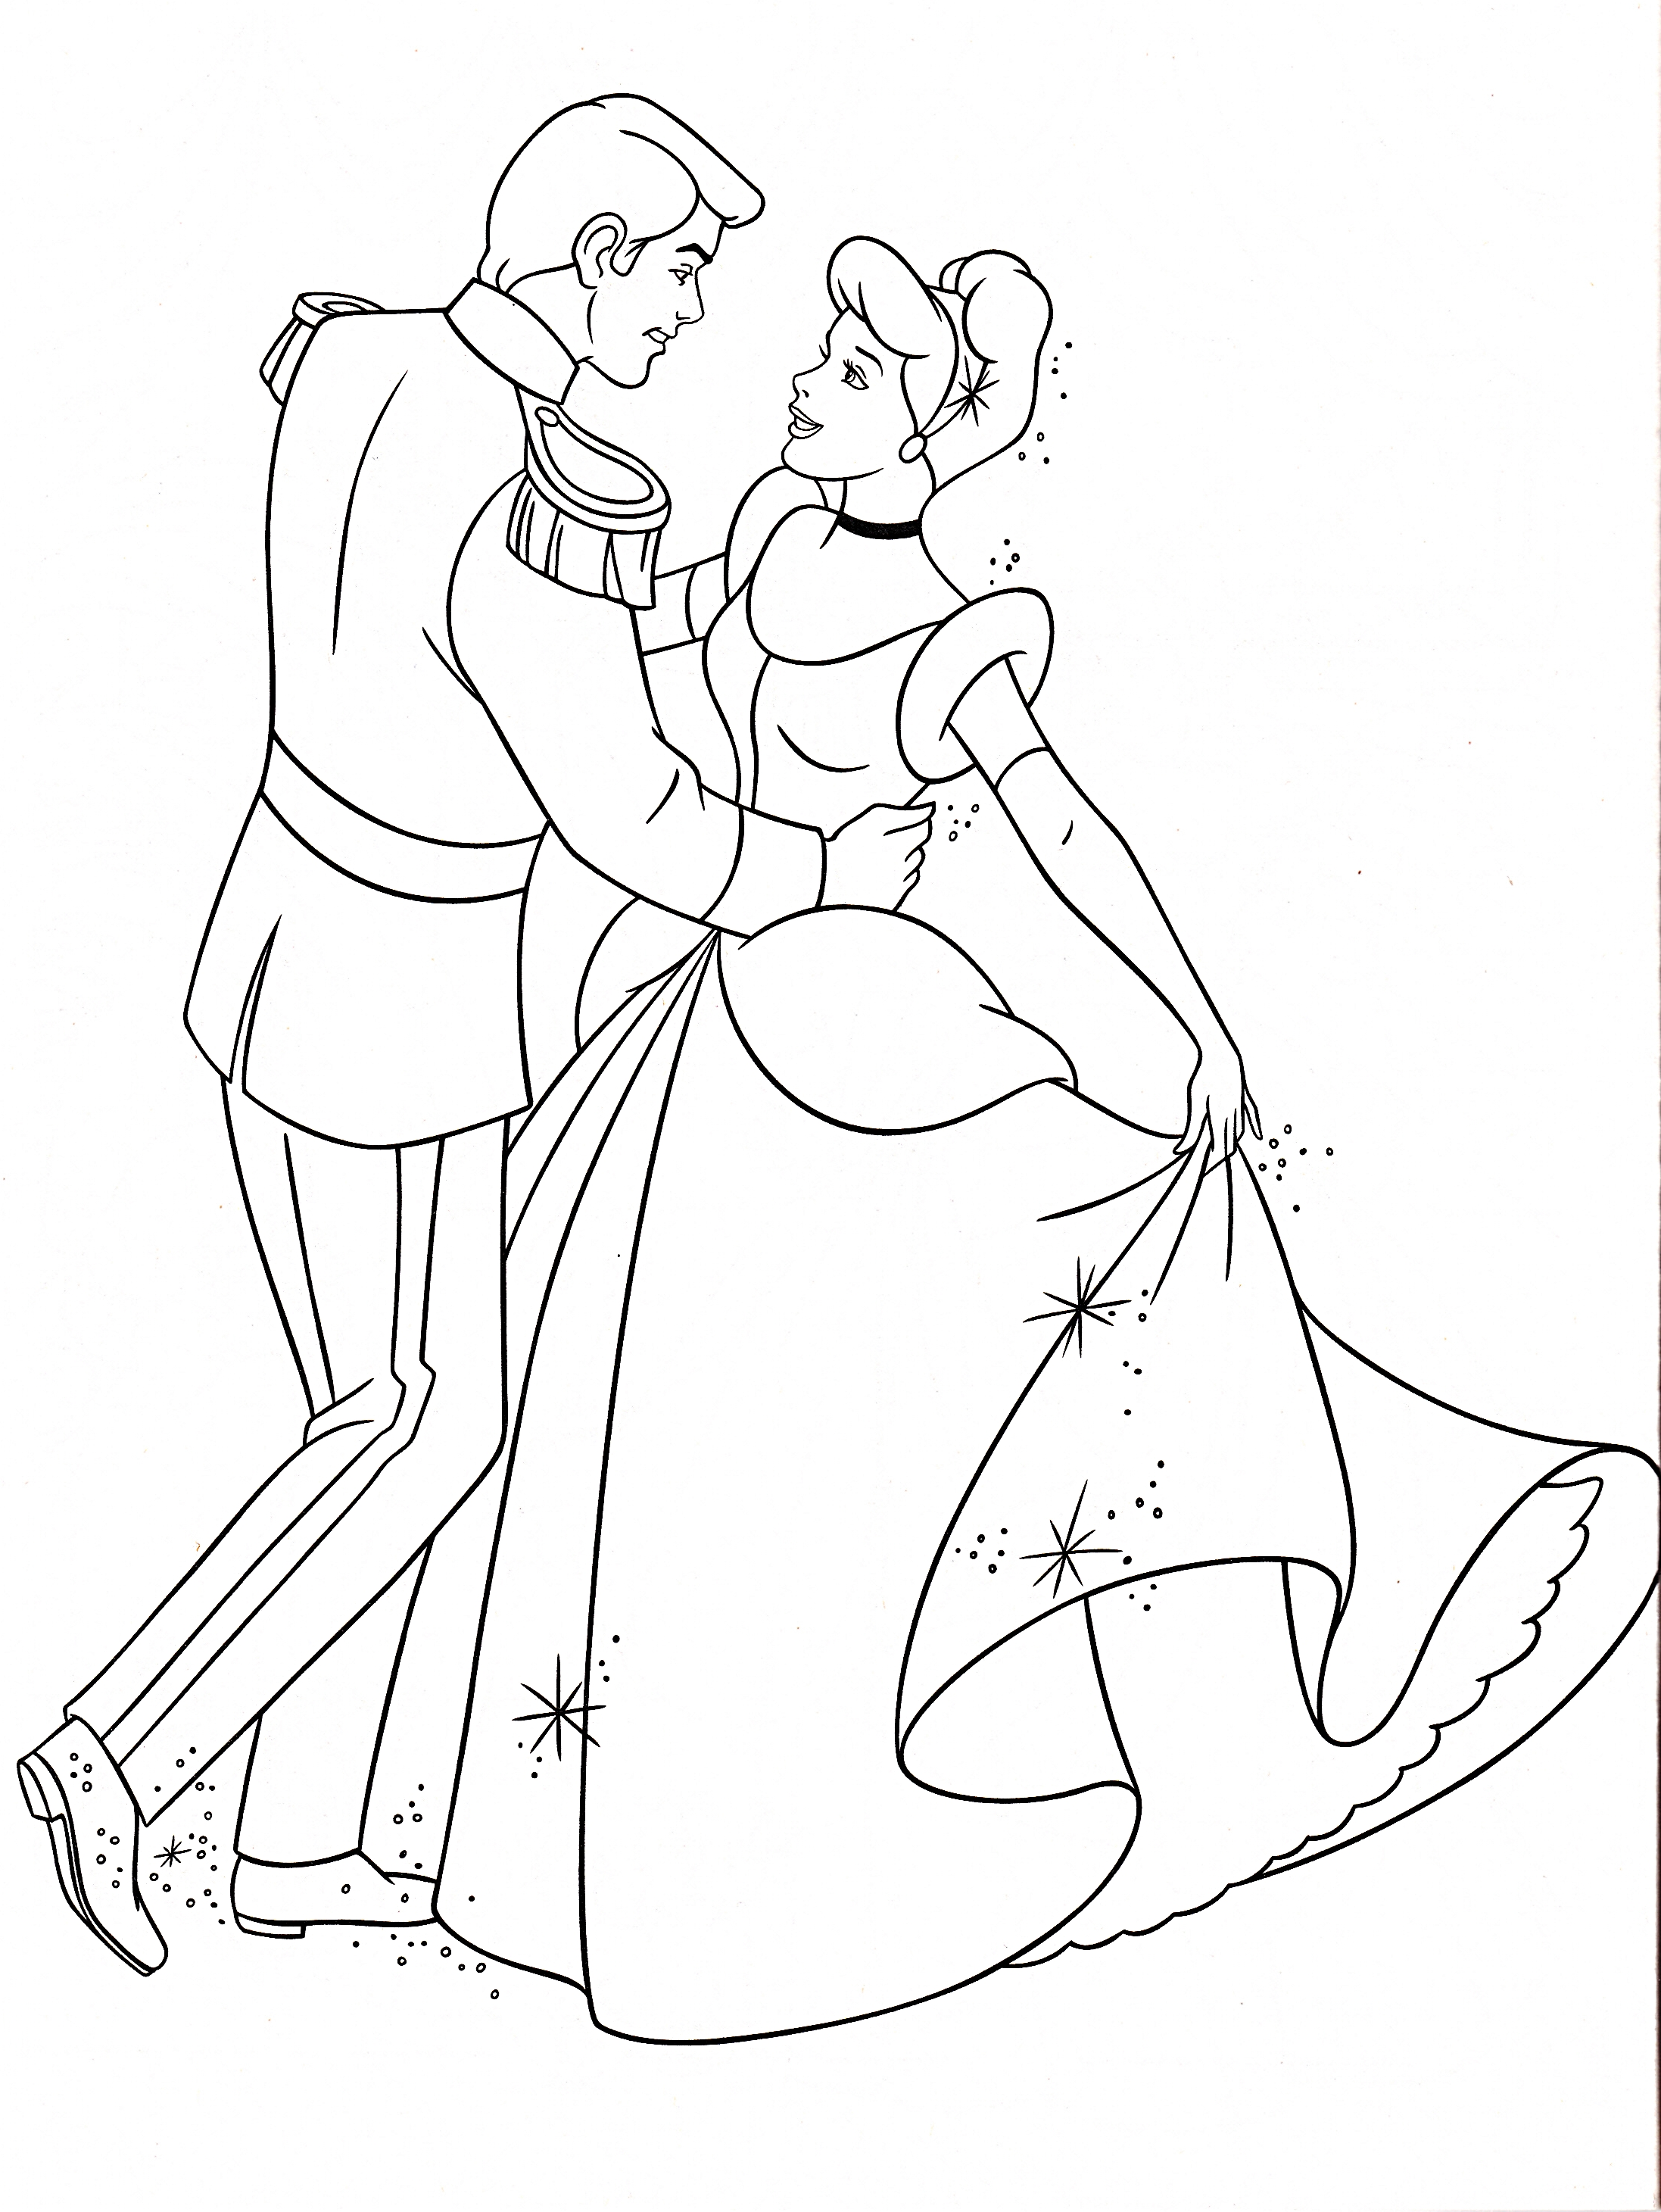 cinderfella coloring pages - photo#26